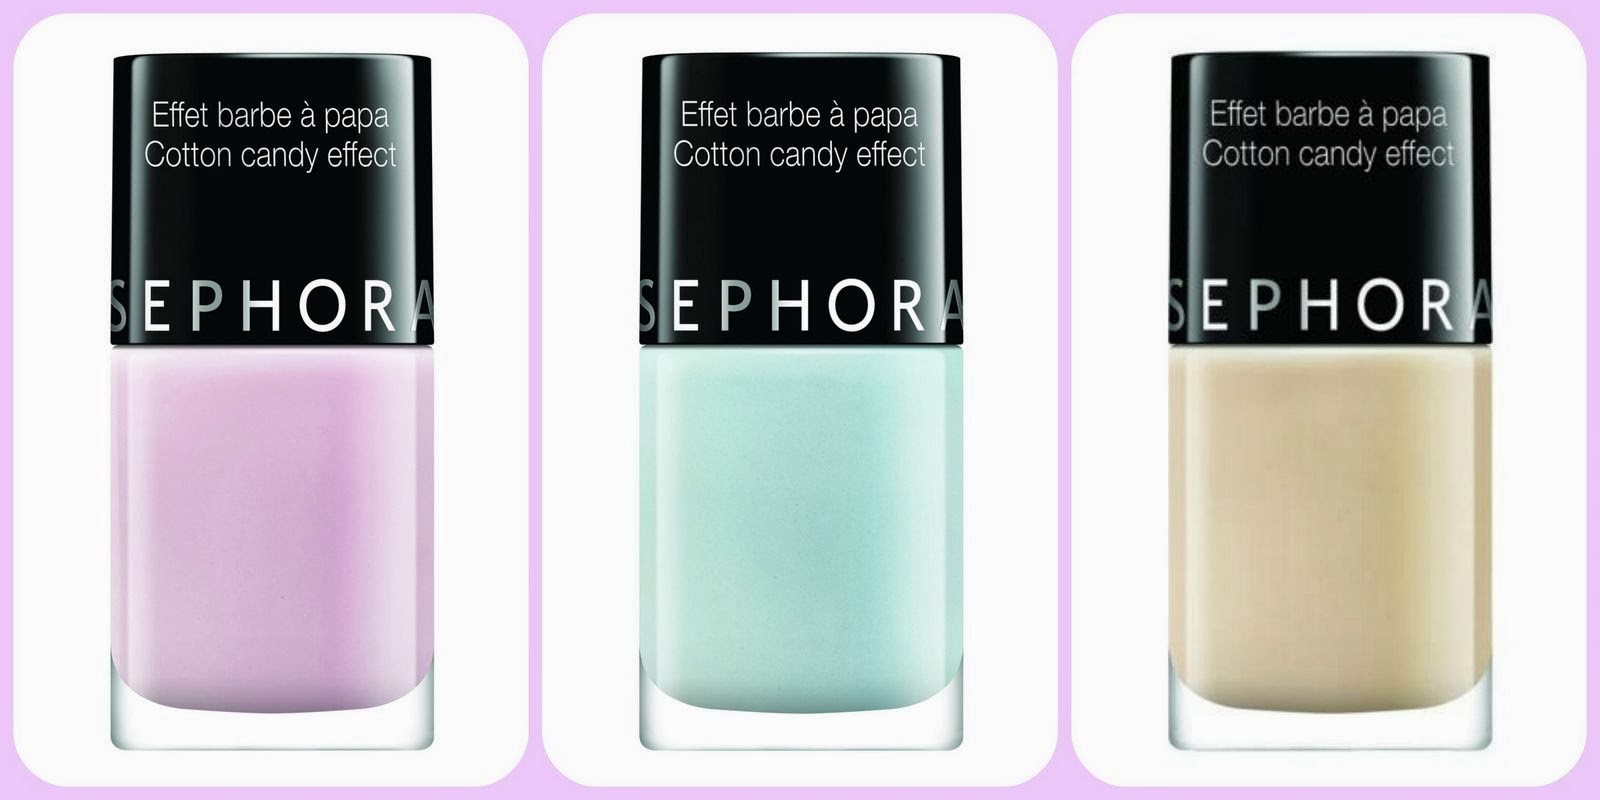 cotton candy effect sephora